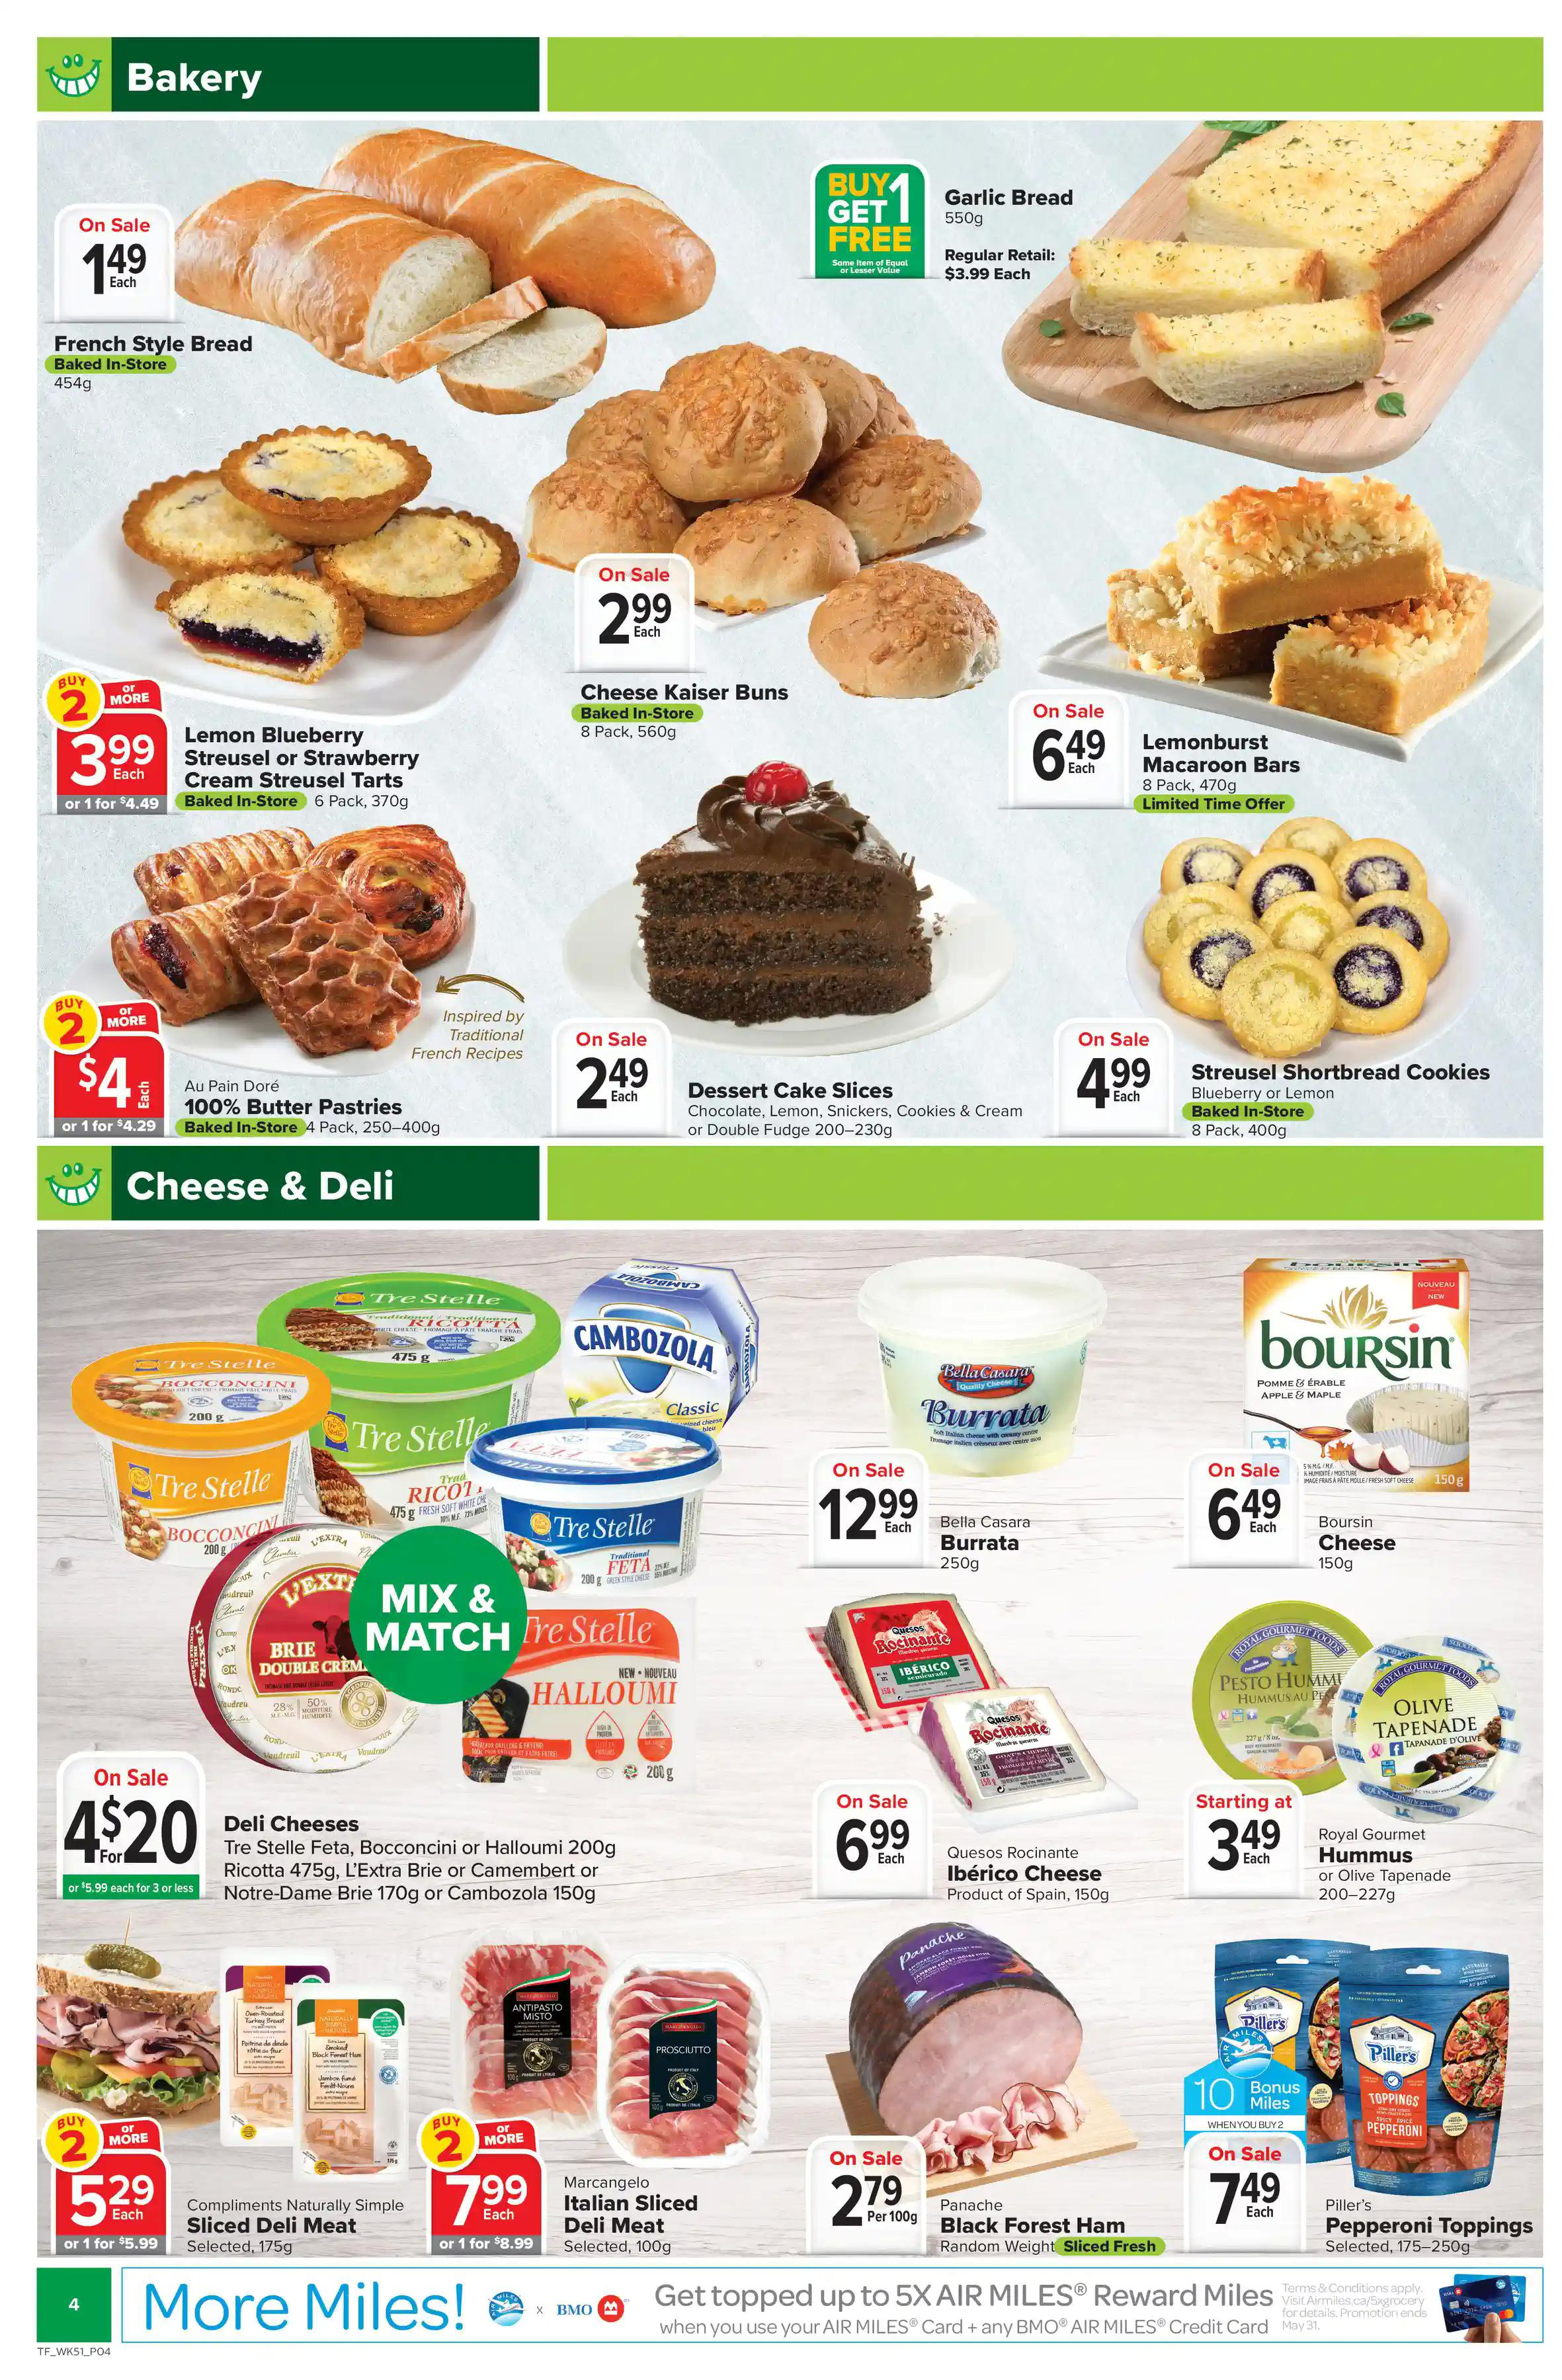 Thrifty Foods - Weekly Flyer Specials - Page 4